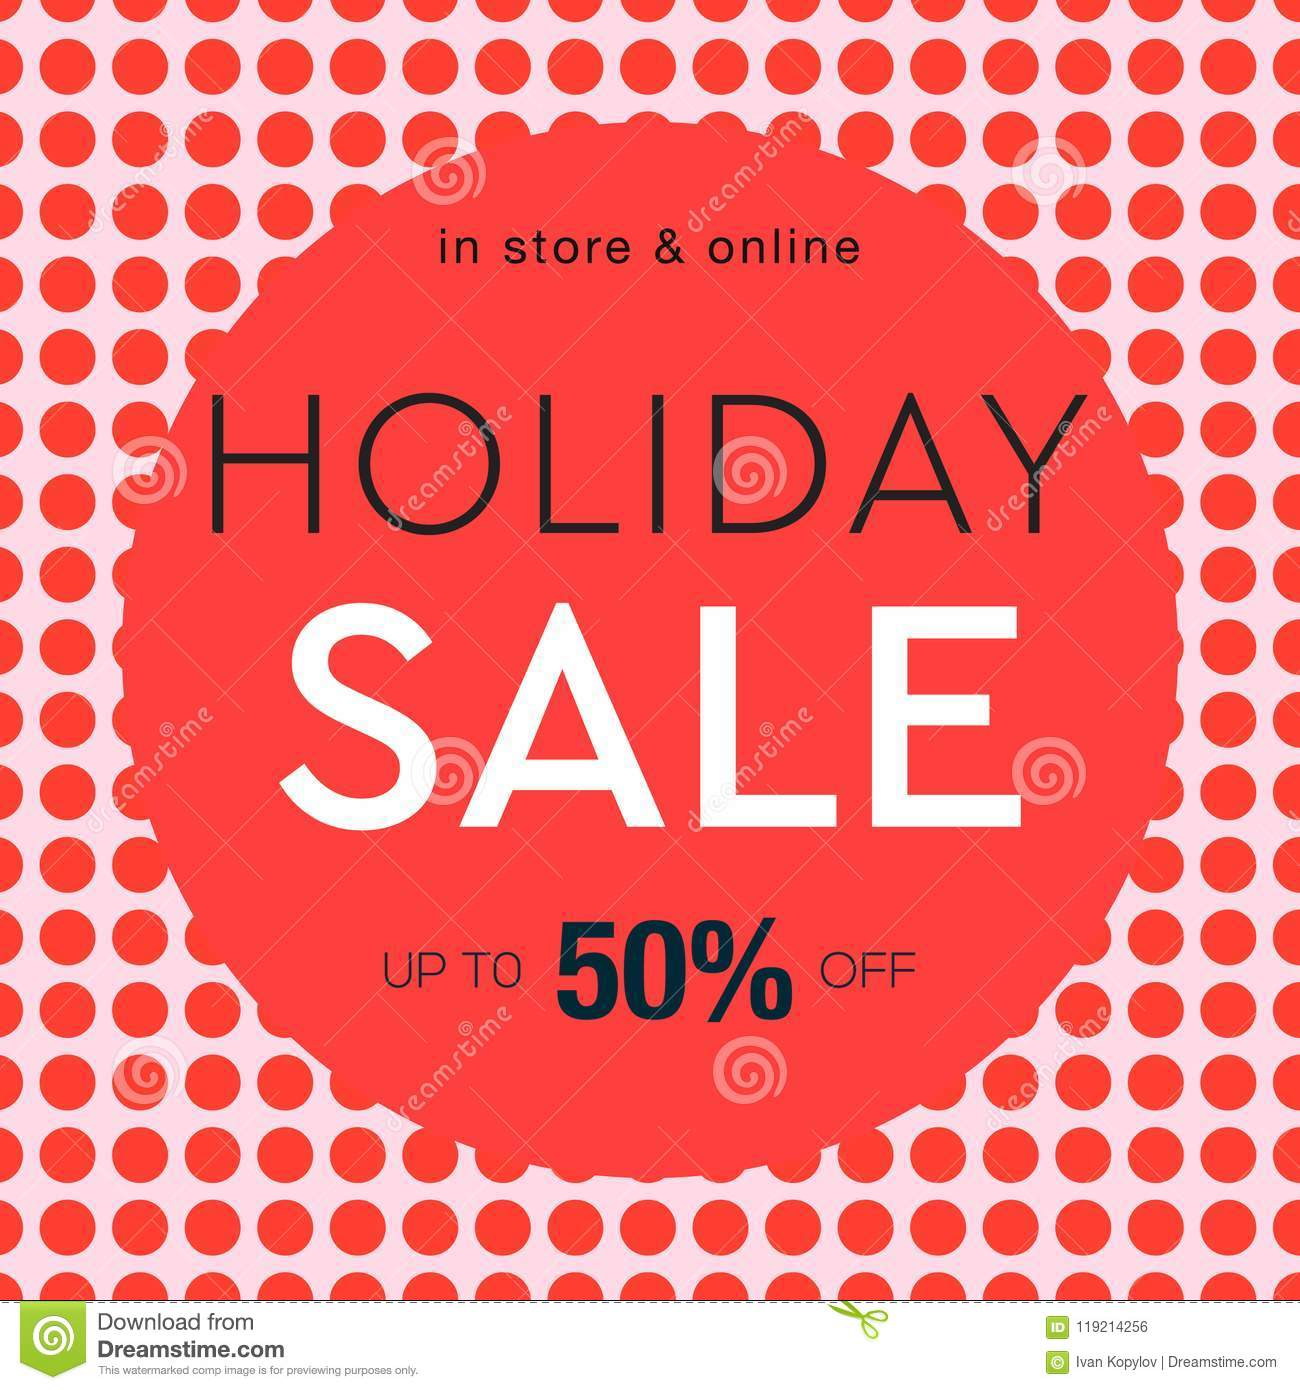 Holiday Sale Poster, Social Media Template For Online